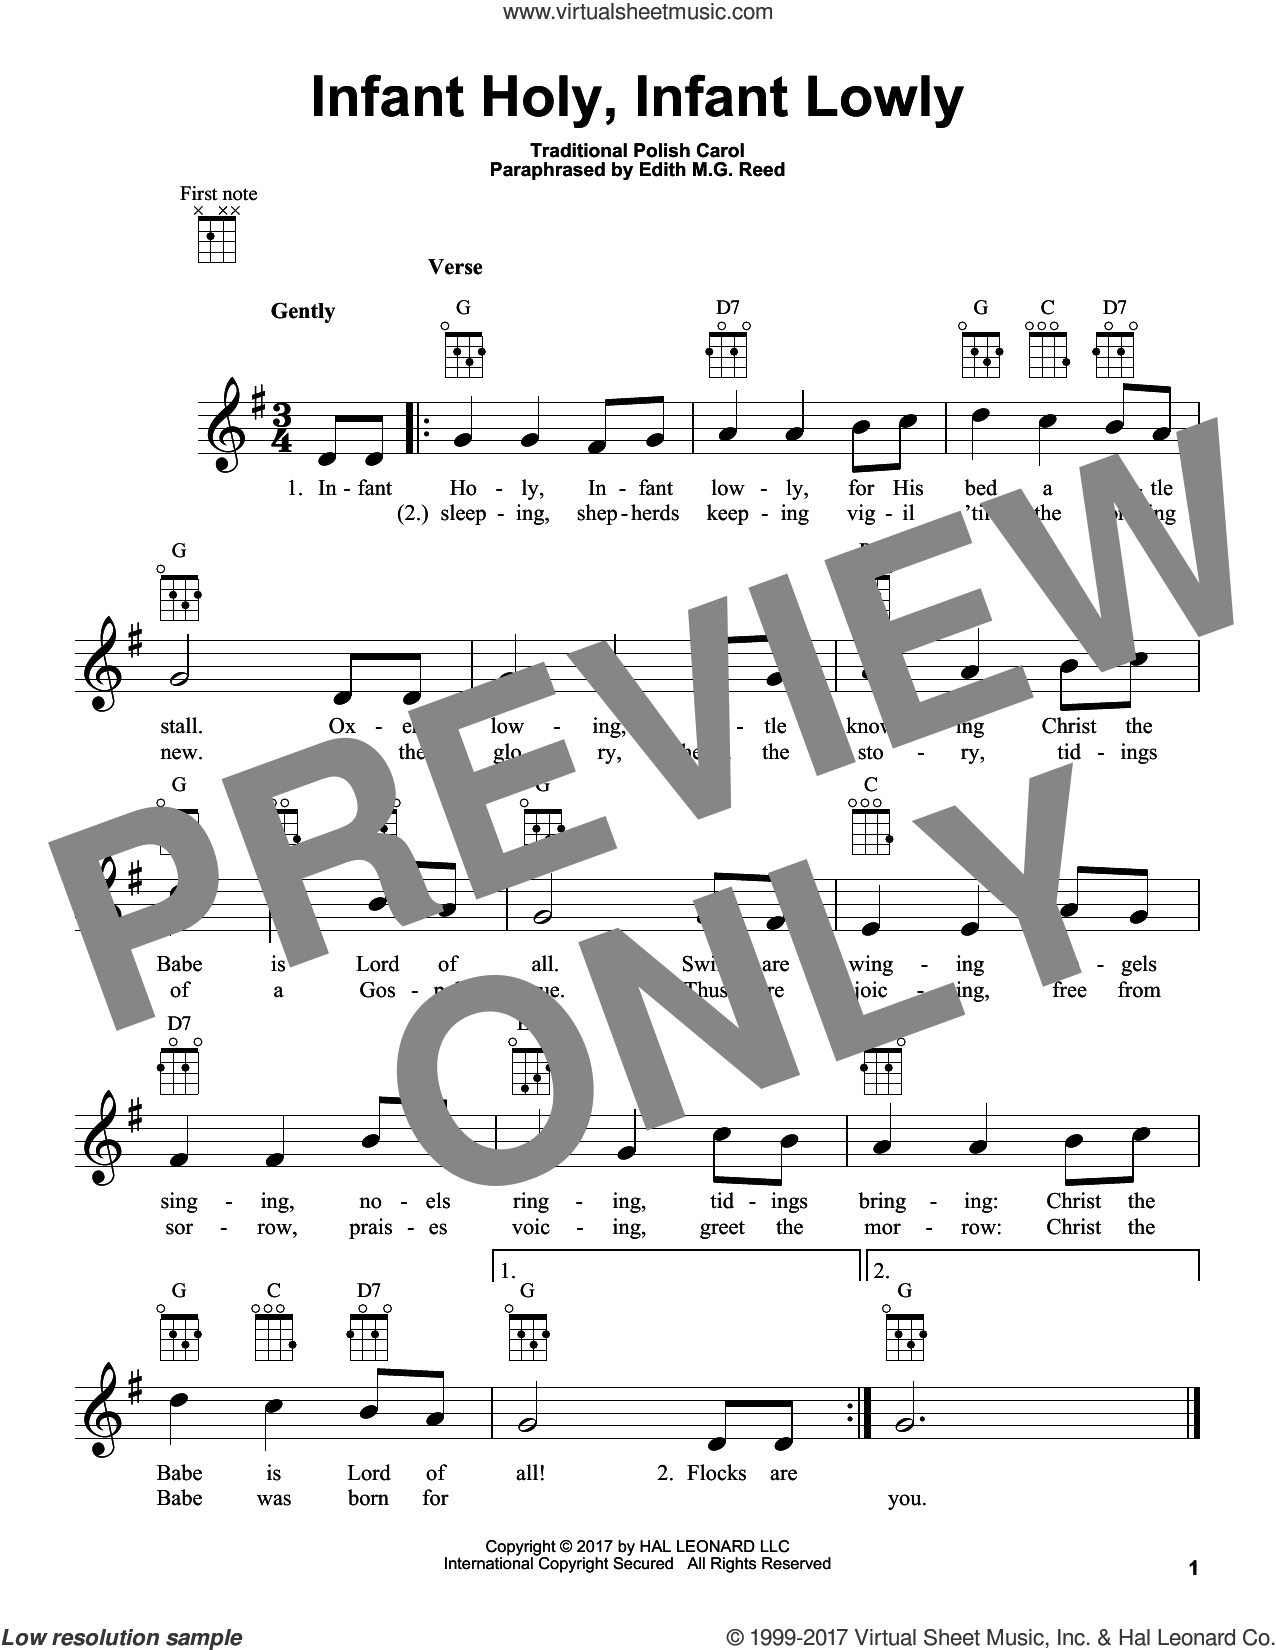 Infant Holy, Infant Lowly sheet music for ukulele by Edith M.G. Reed and Miscellaneous. Score Image Preview.